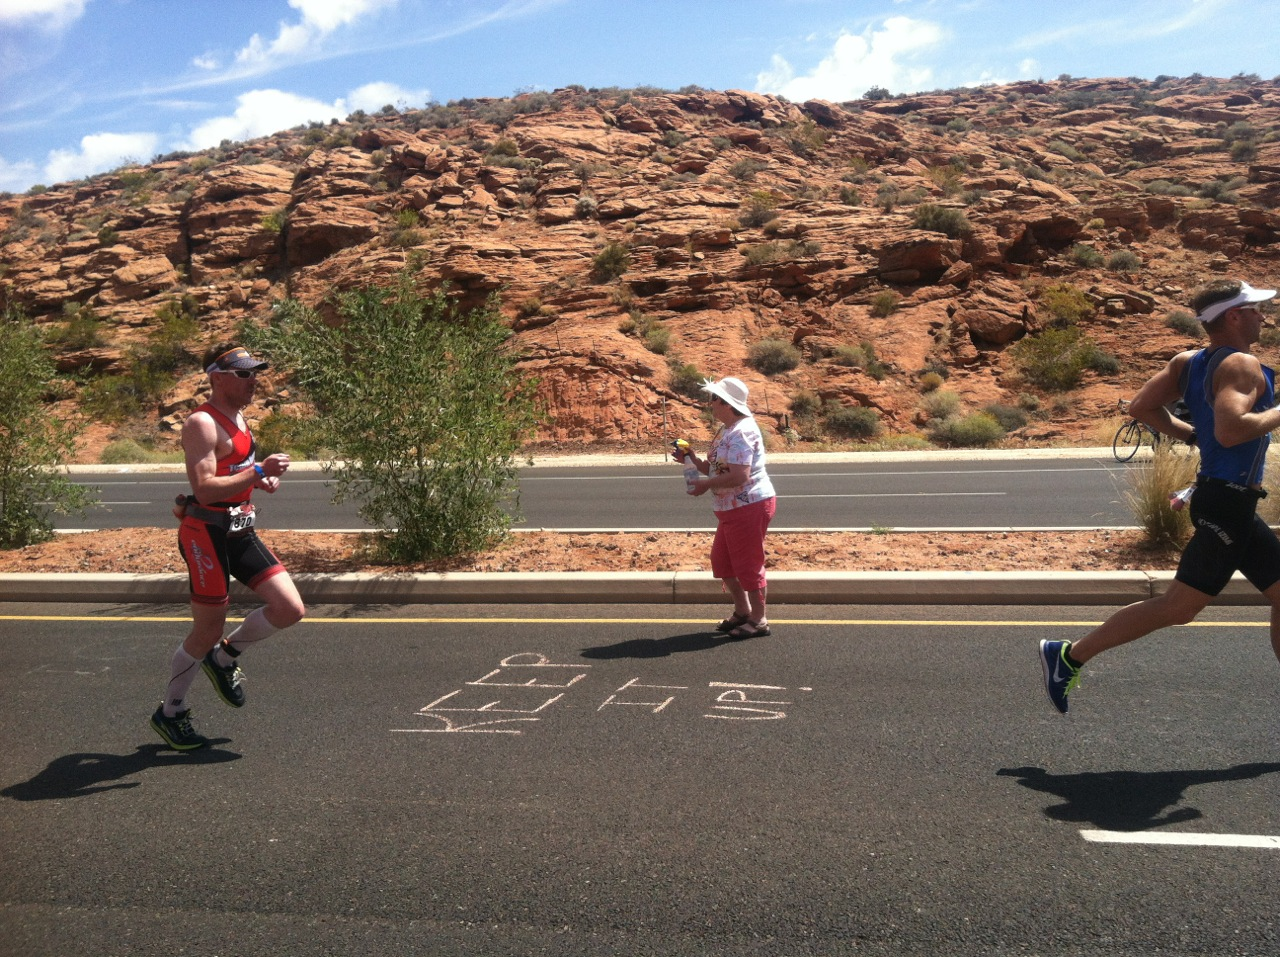 Athletes run past encouraging signs left by volunteers at Ironman St. George, St. George Utah, Date not specified | Photo courtesy of Niki Warner